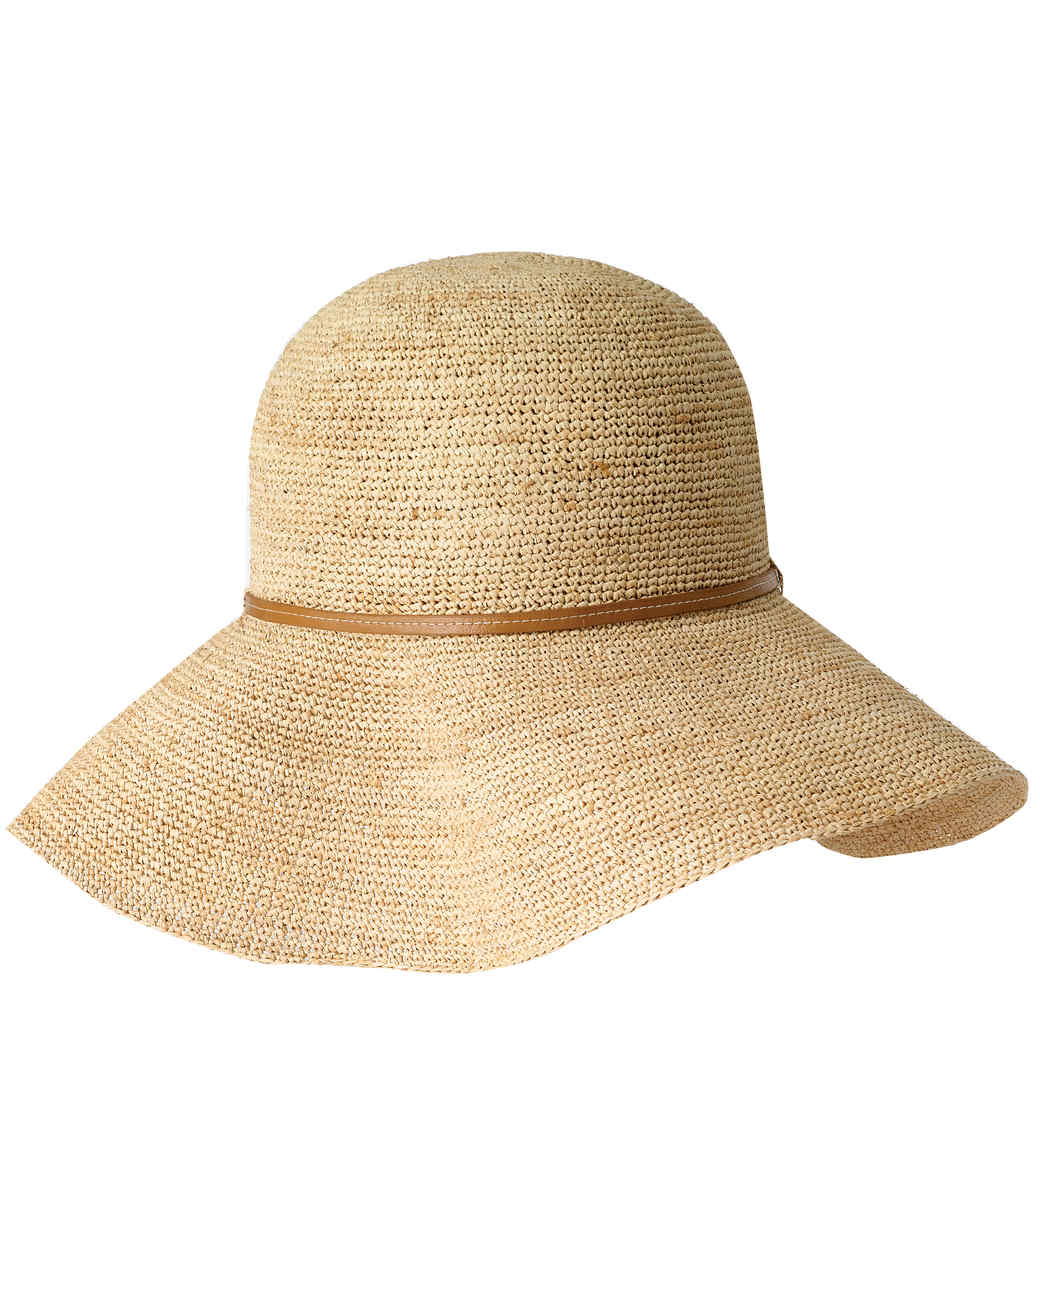 hat-finds-0811mld107422.jpg